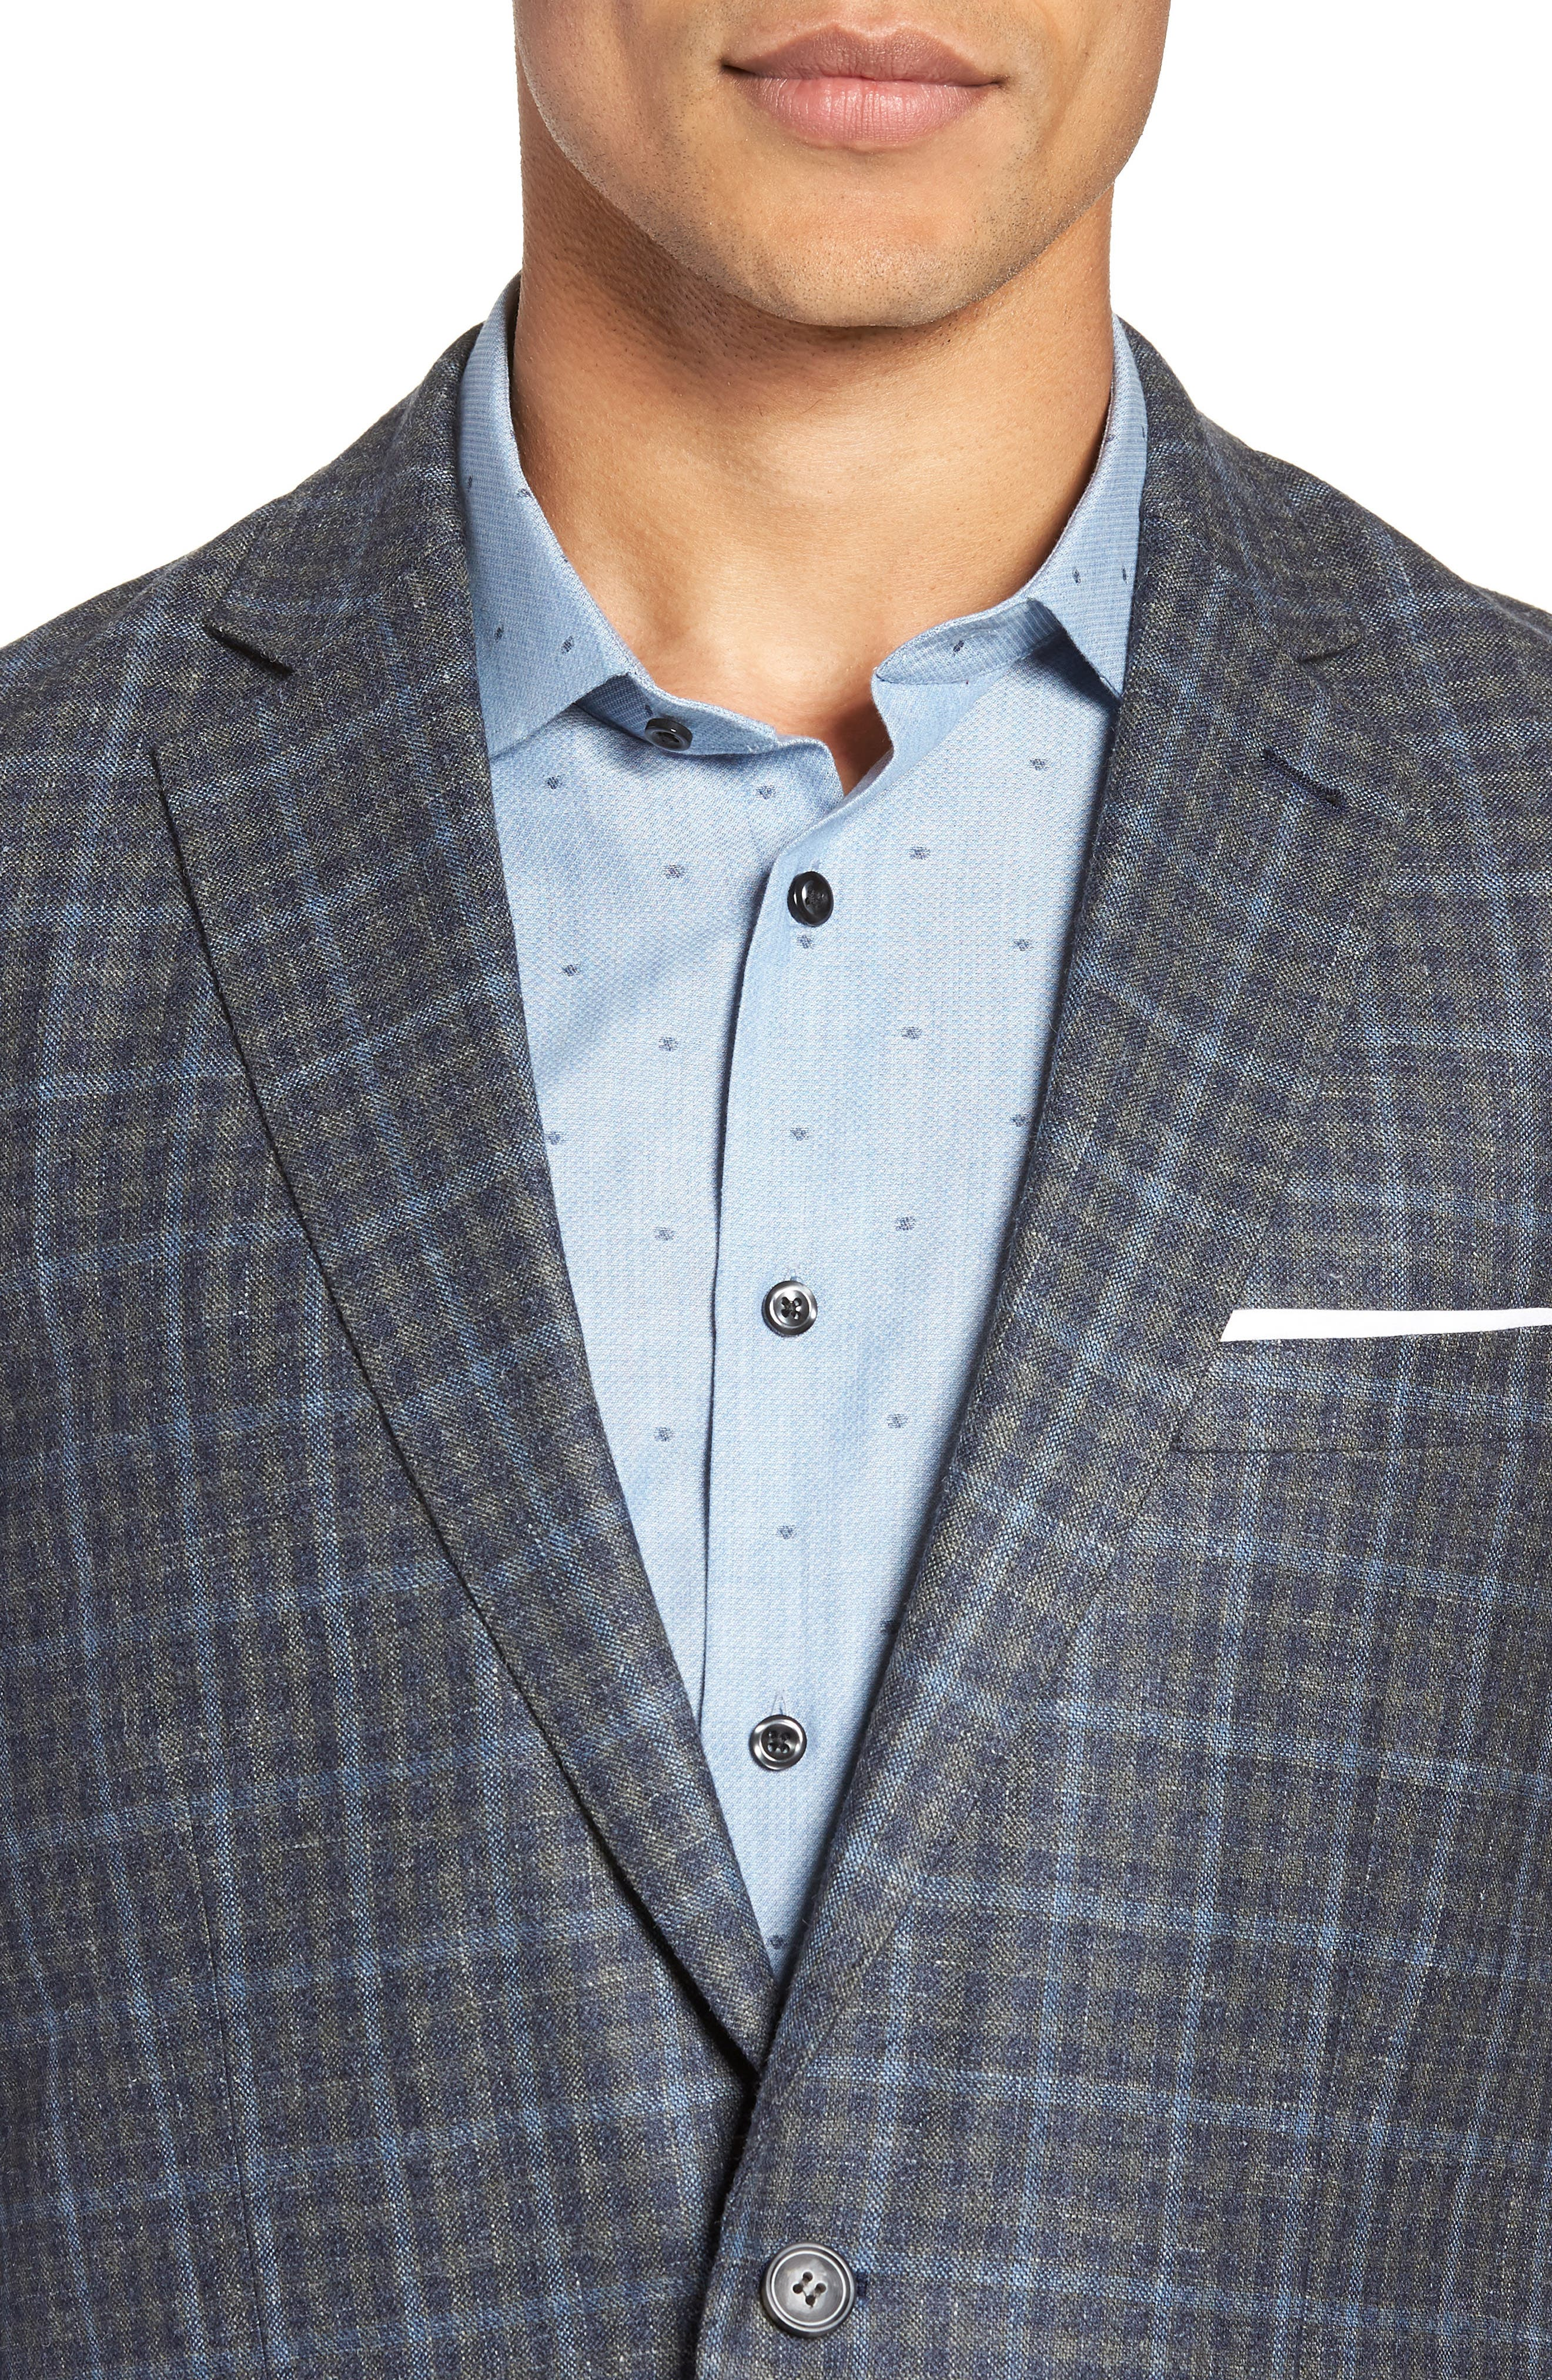 Crown Wool & Silk Blend Plaid Sport Coat,                             Alternate thumbnail 4, color,                             GREY